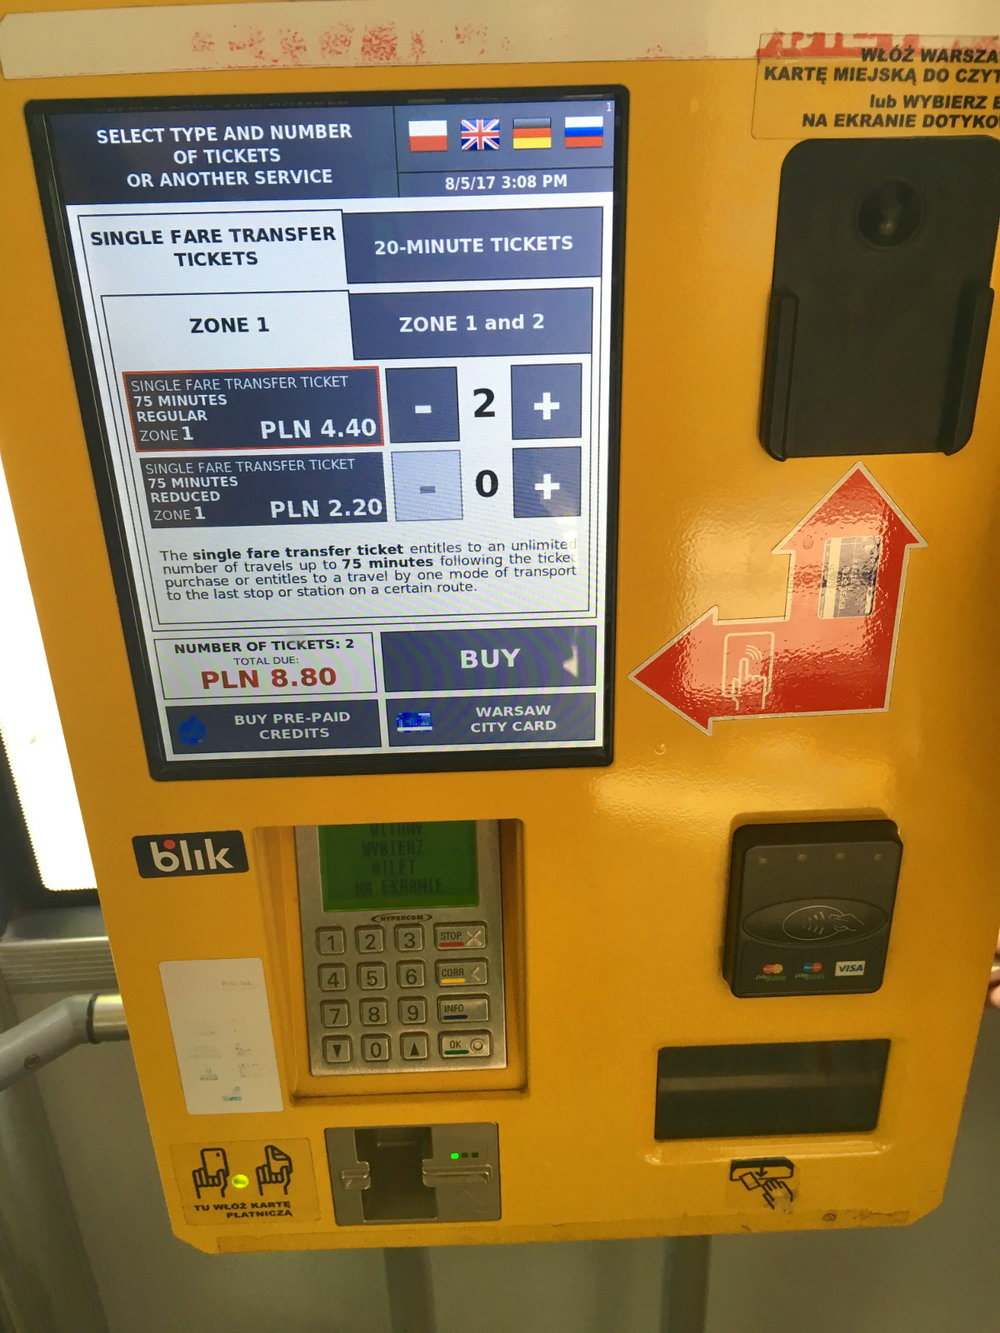 This ticket machine was located in the center of the bus. We changed the language to English by selecting the United Kingdom flag in the upper right corner of the touch screen.